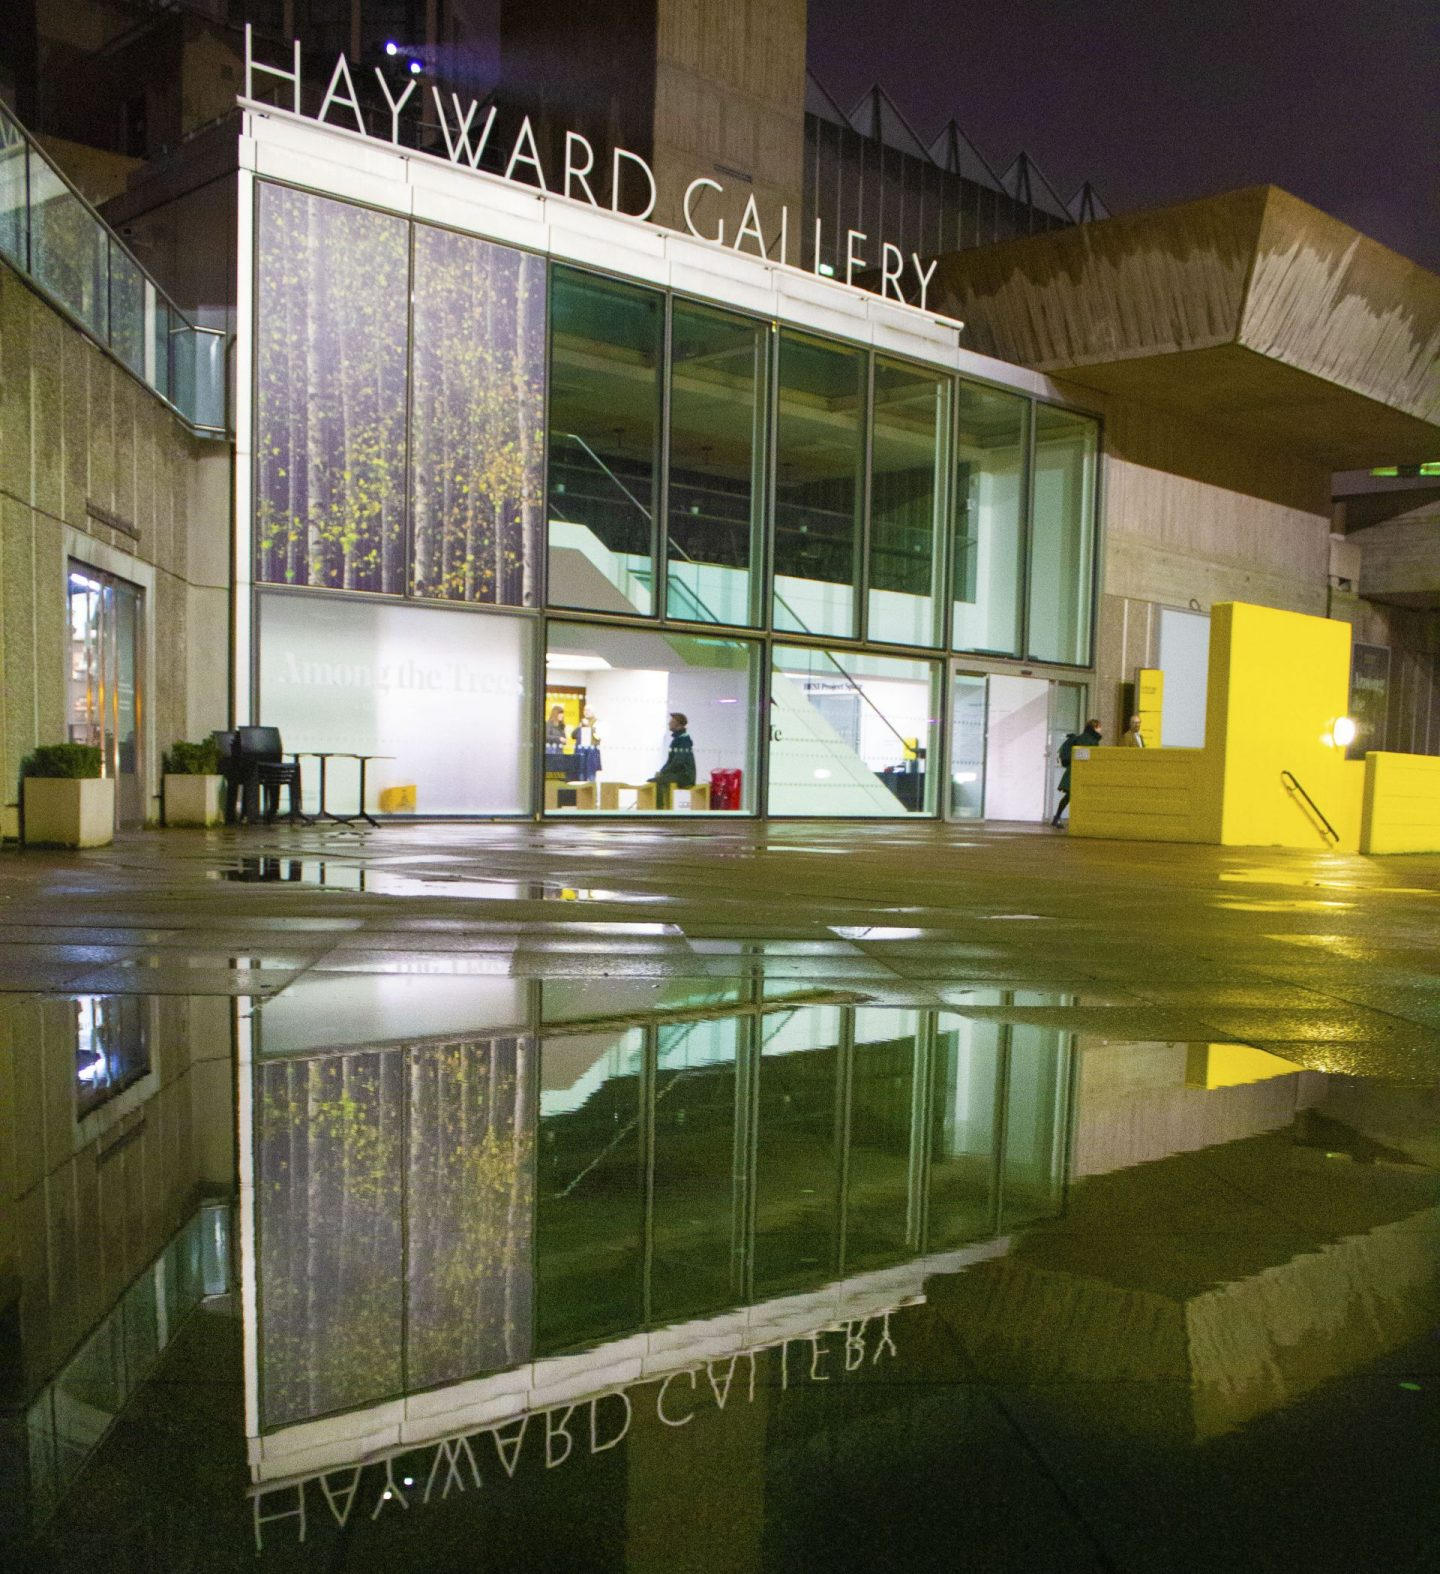 Hayward Gallery, Southbank Centre, International Women's Day